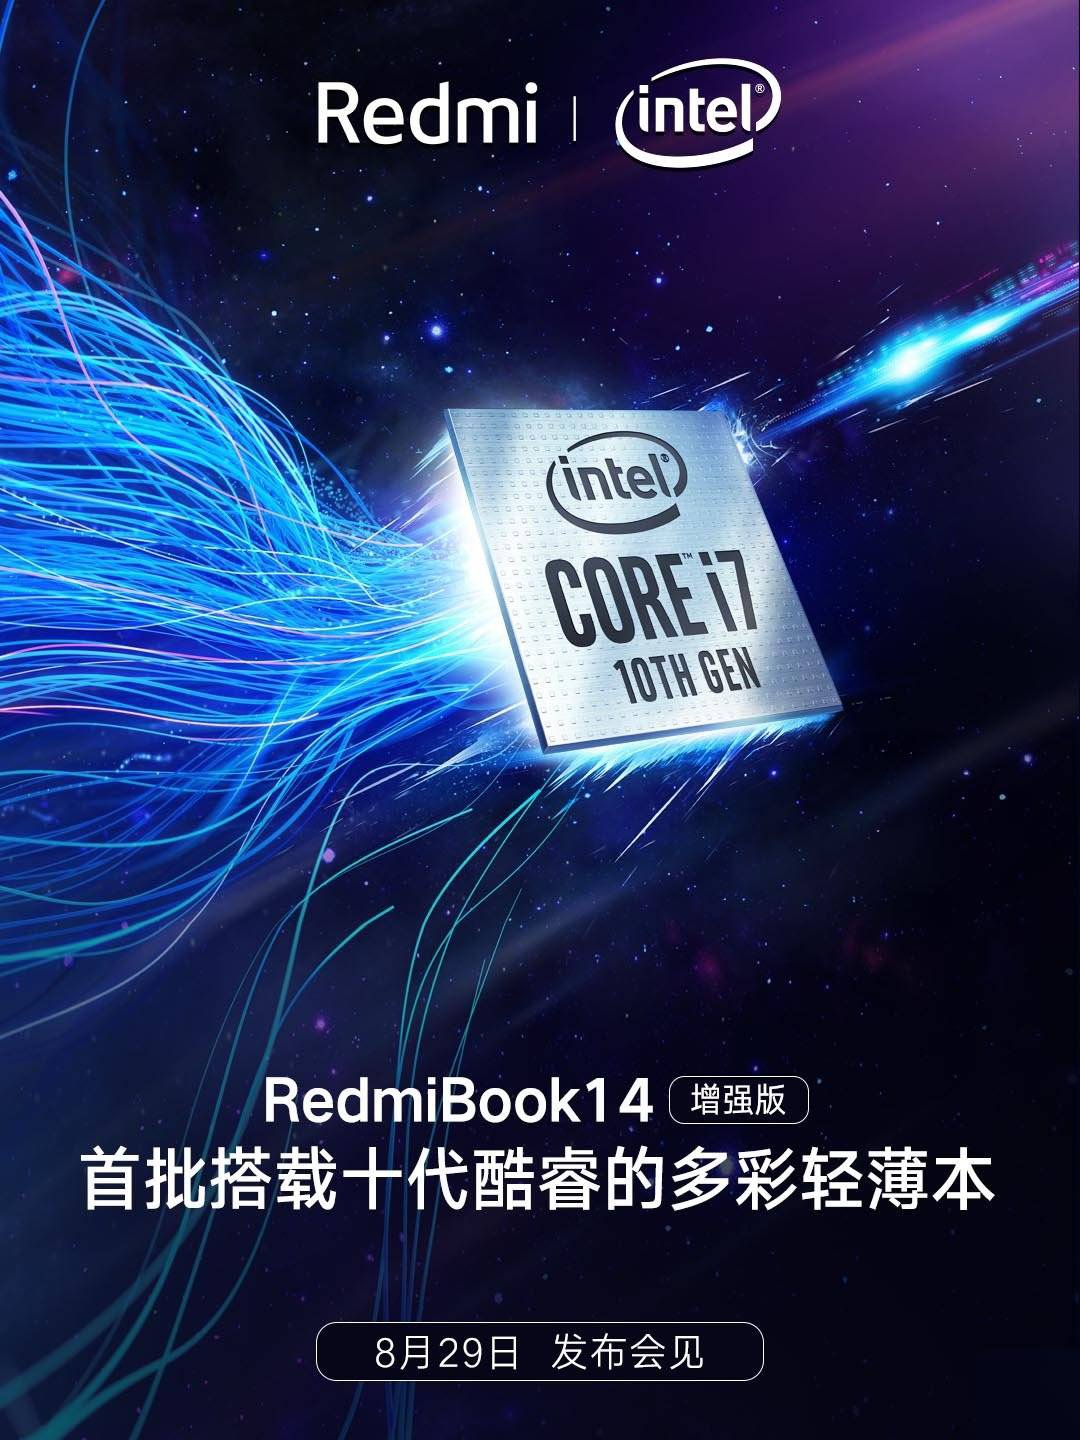 RedmiBook 14 equipped with 10th generation Intel Core i7. Xiaomi Addicted News